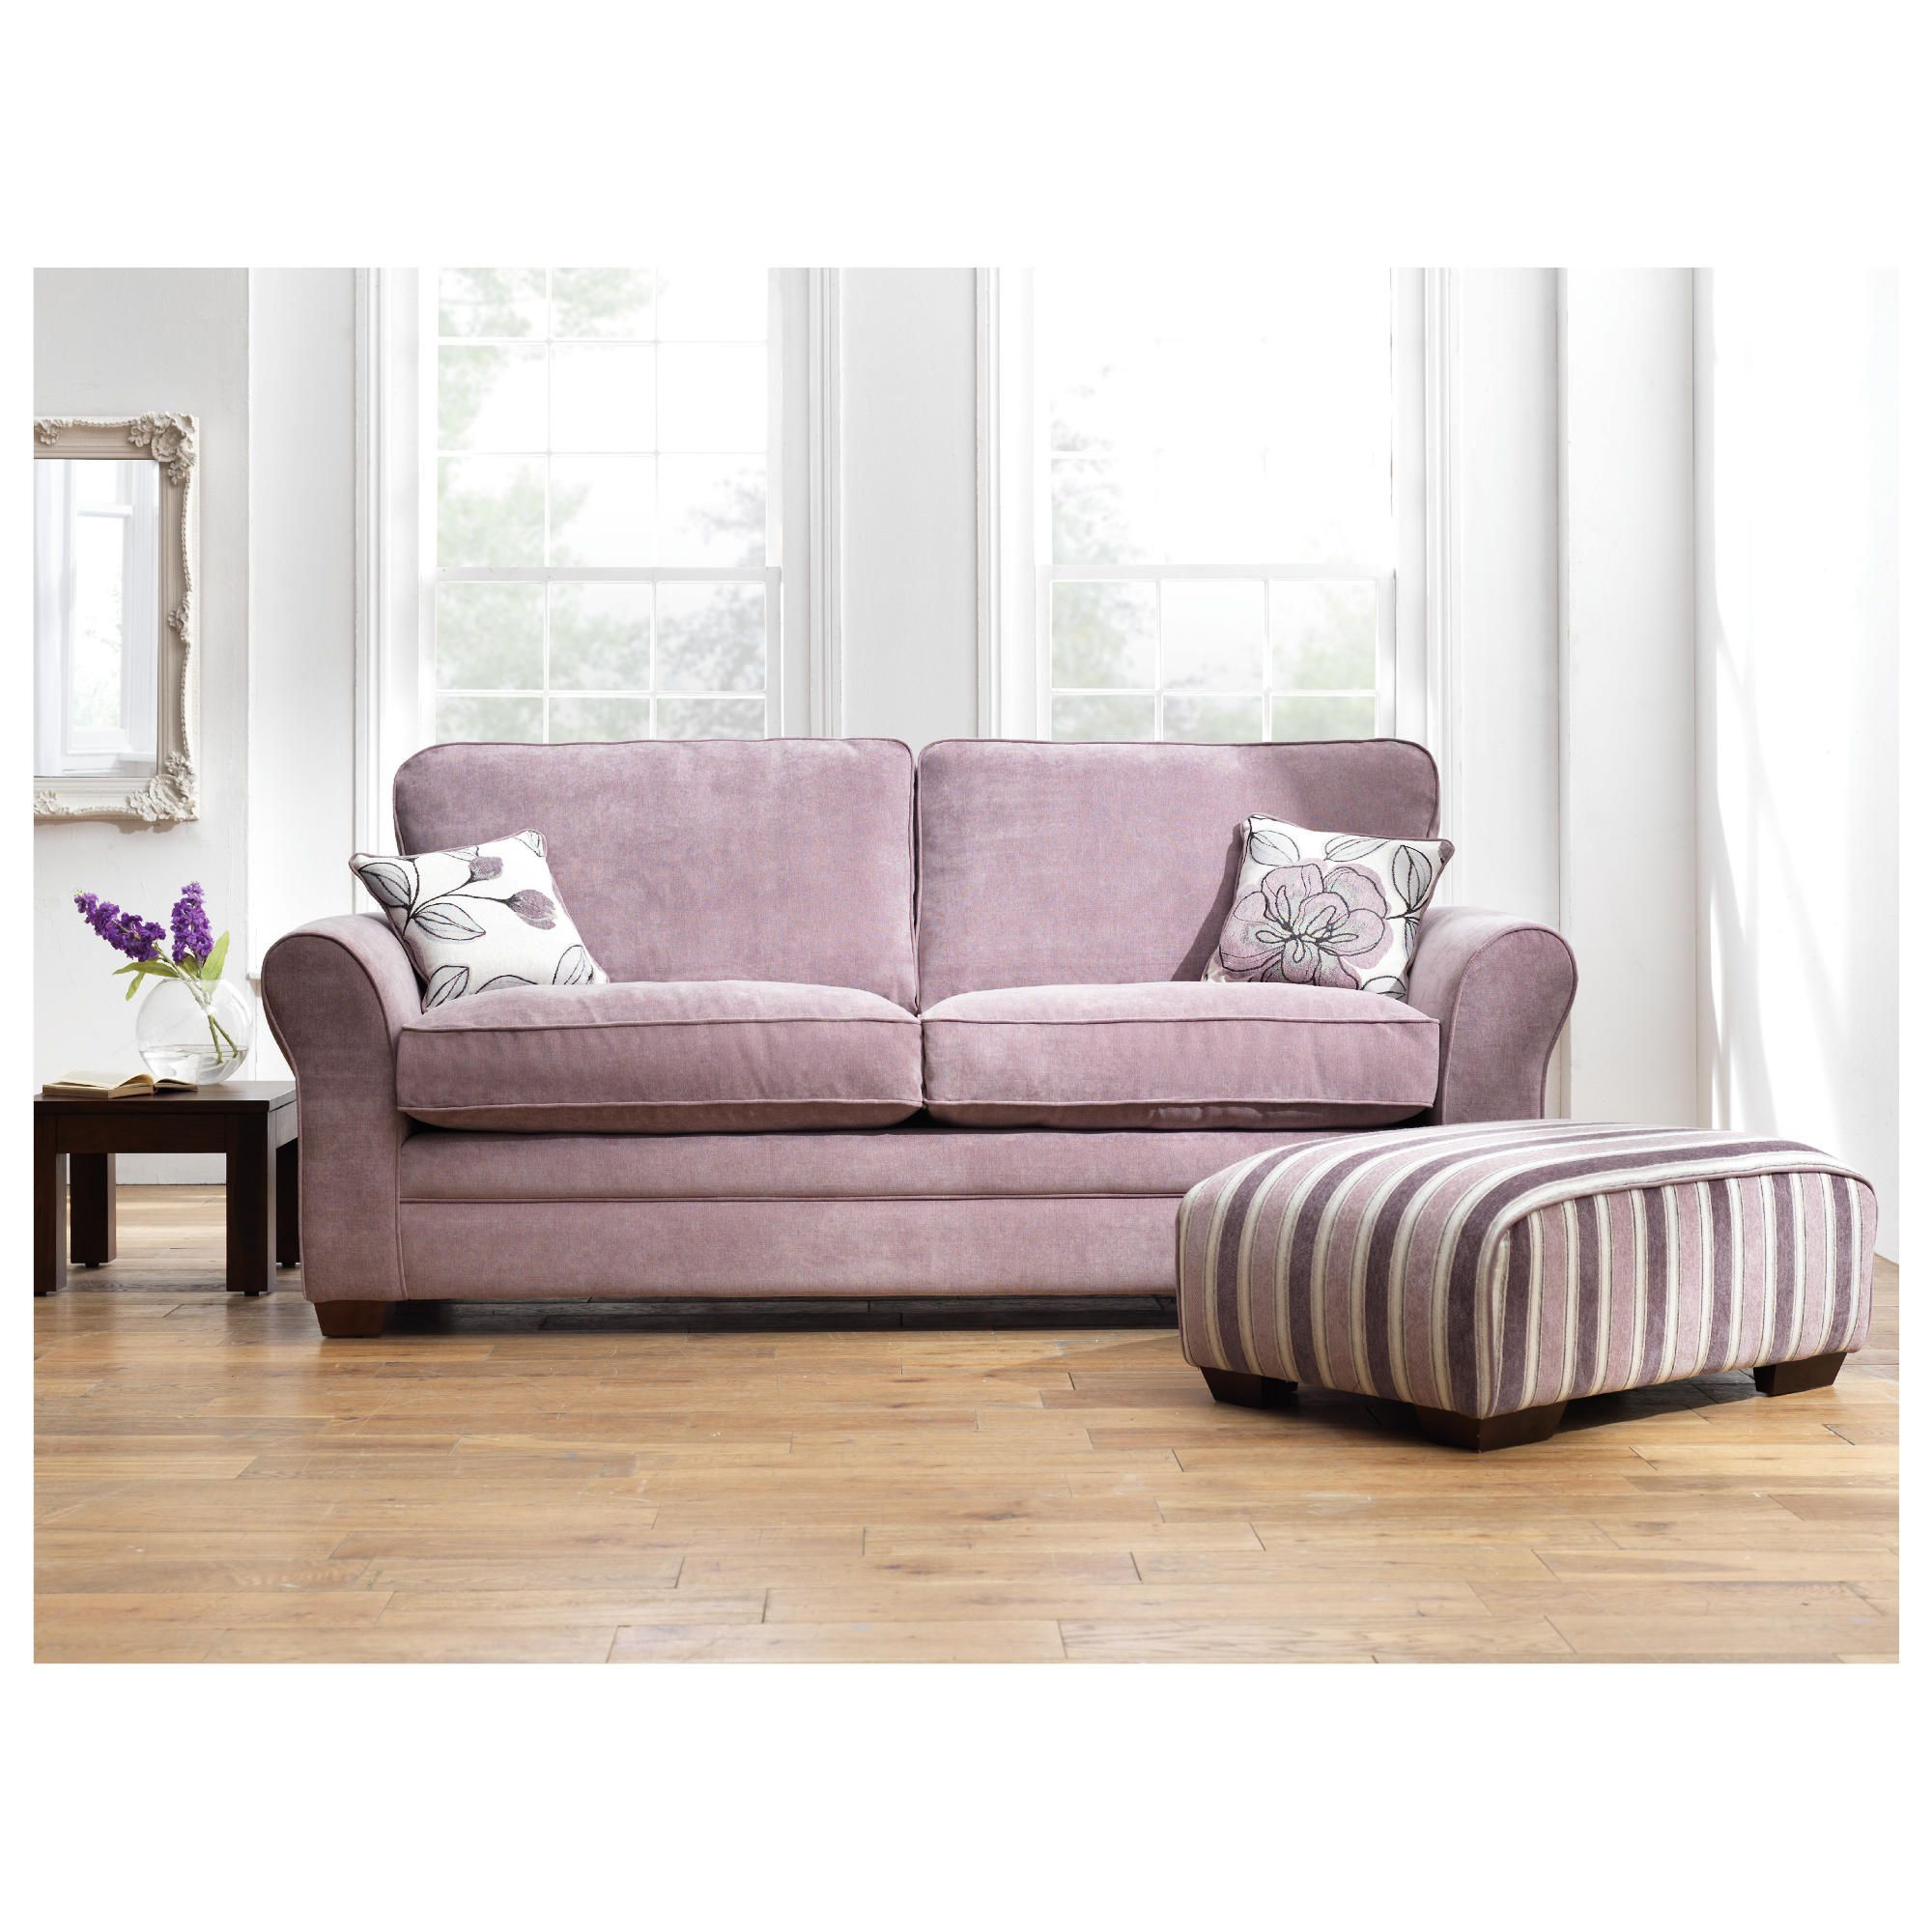 Amelie Large Standard Back Fabric Sofa, Lilac at Tesco Direct